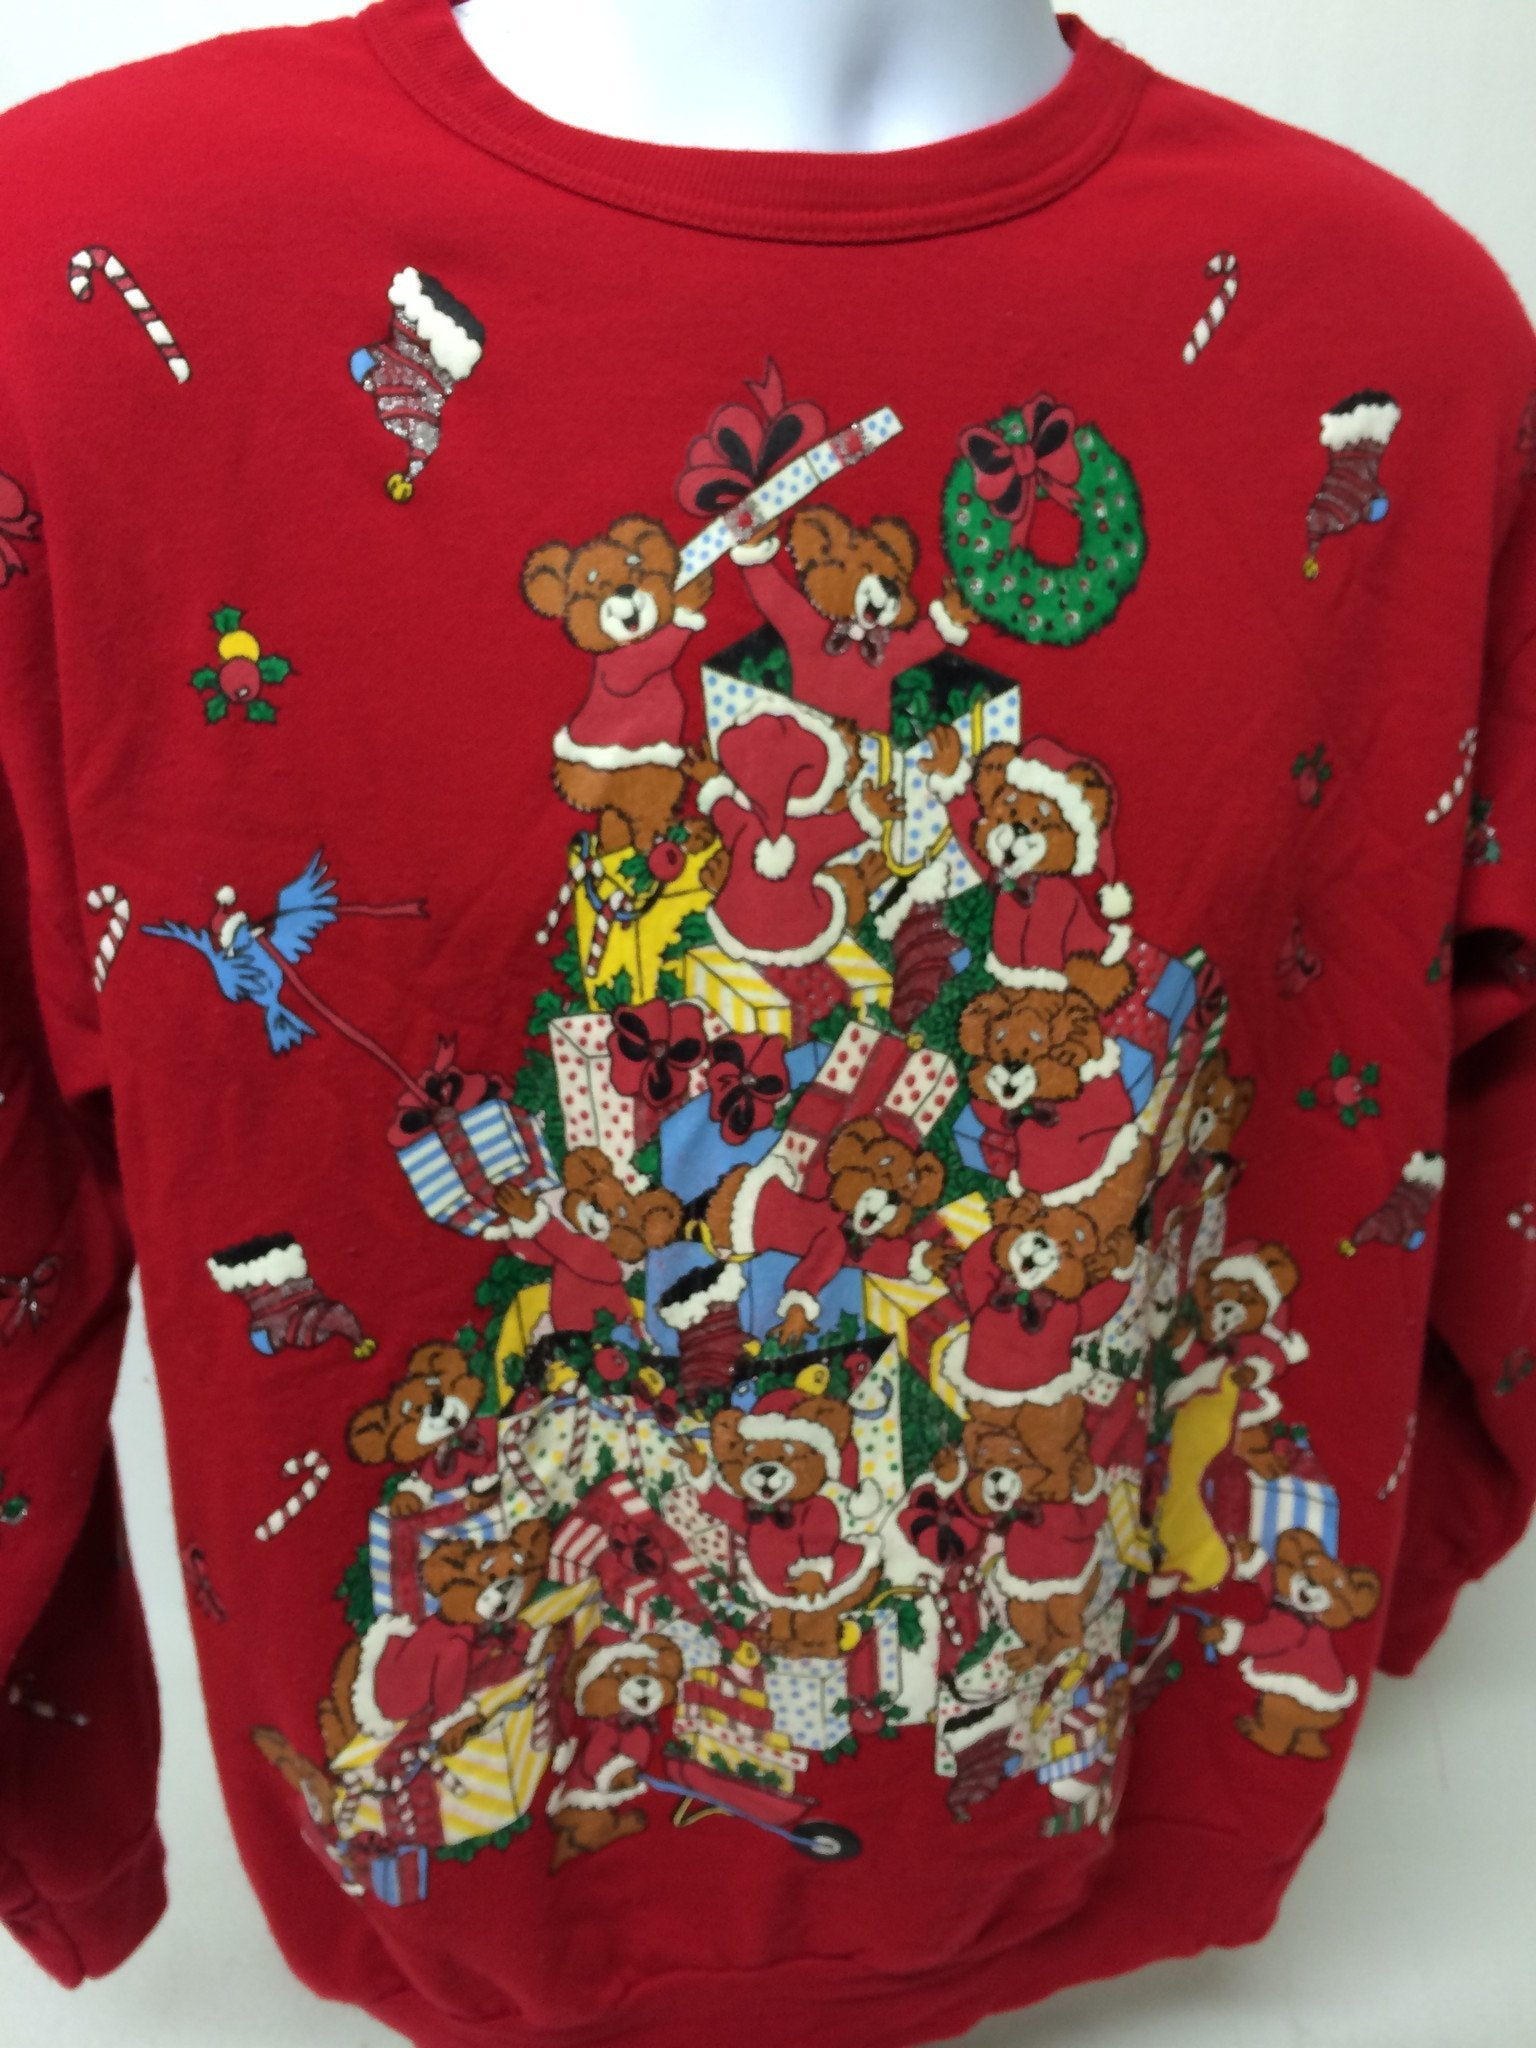 Huge Pile of Christmas - Vintage Xmas Sweatshirt